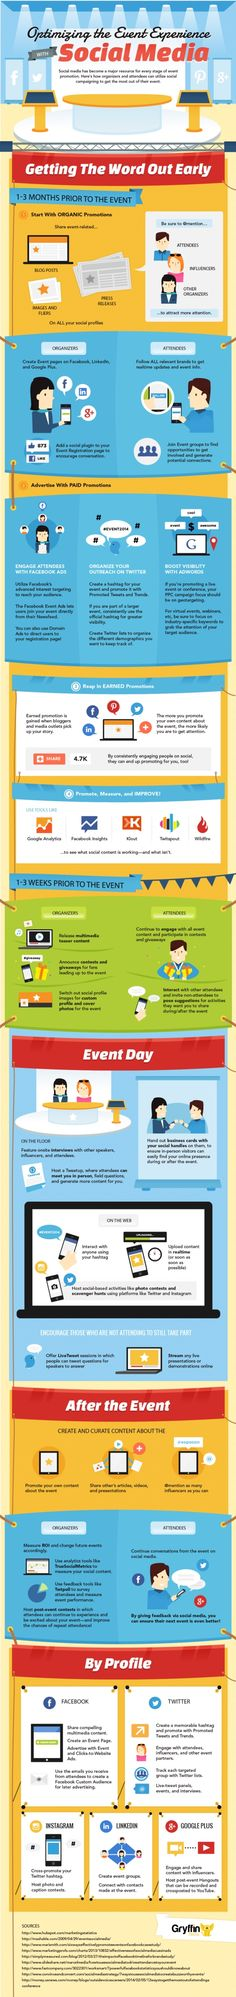 How to use Social Media to Optimize Your Event [INFOGRAPHIC]